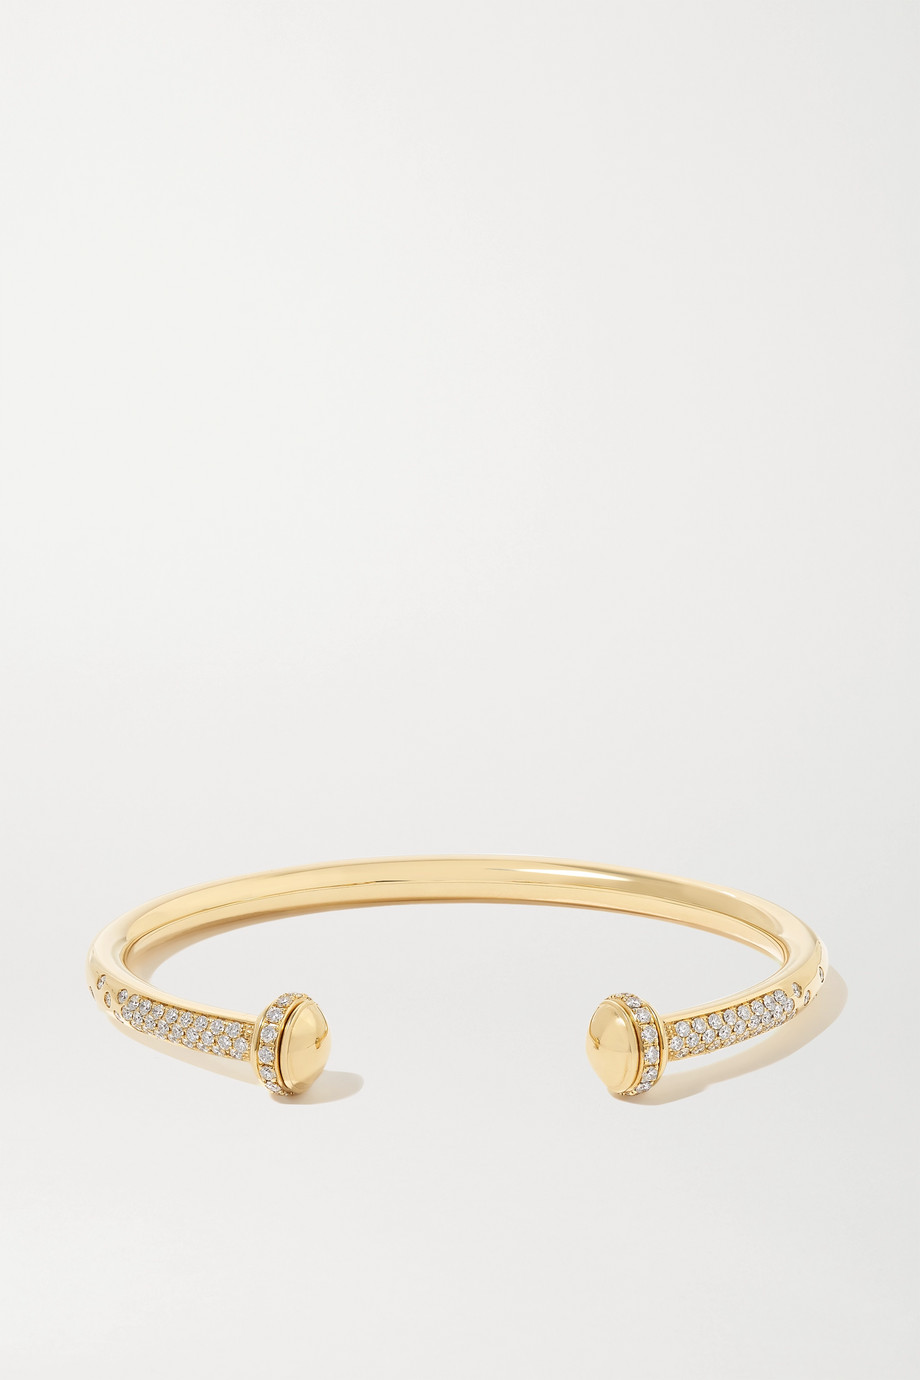 Piaget Possession 18-karat gold diamond cuff